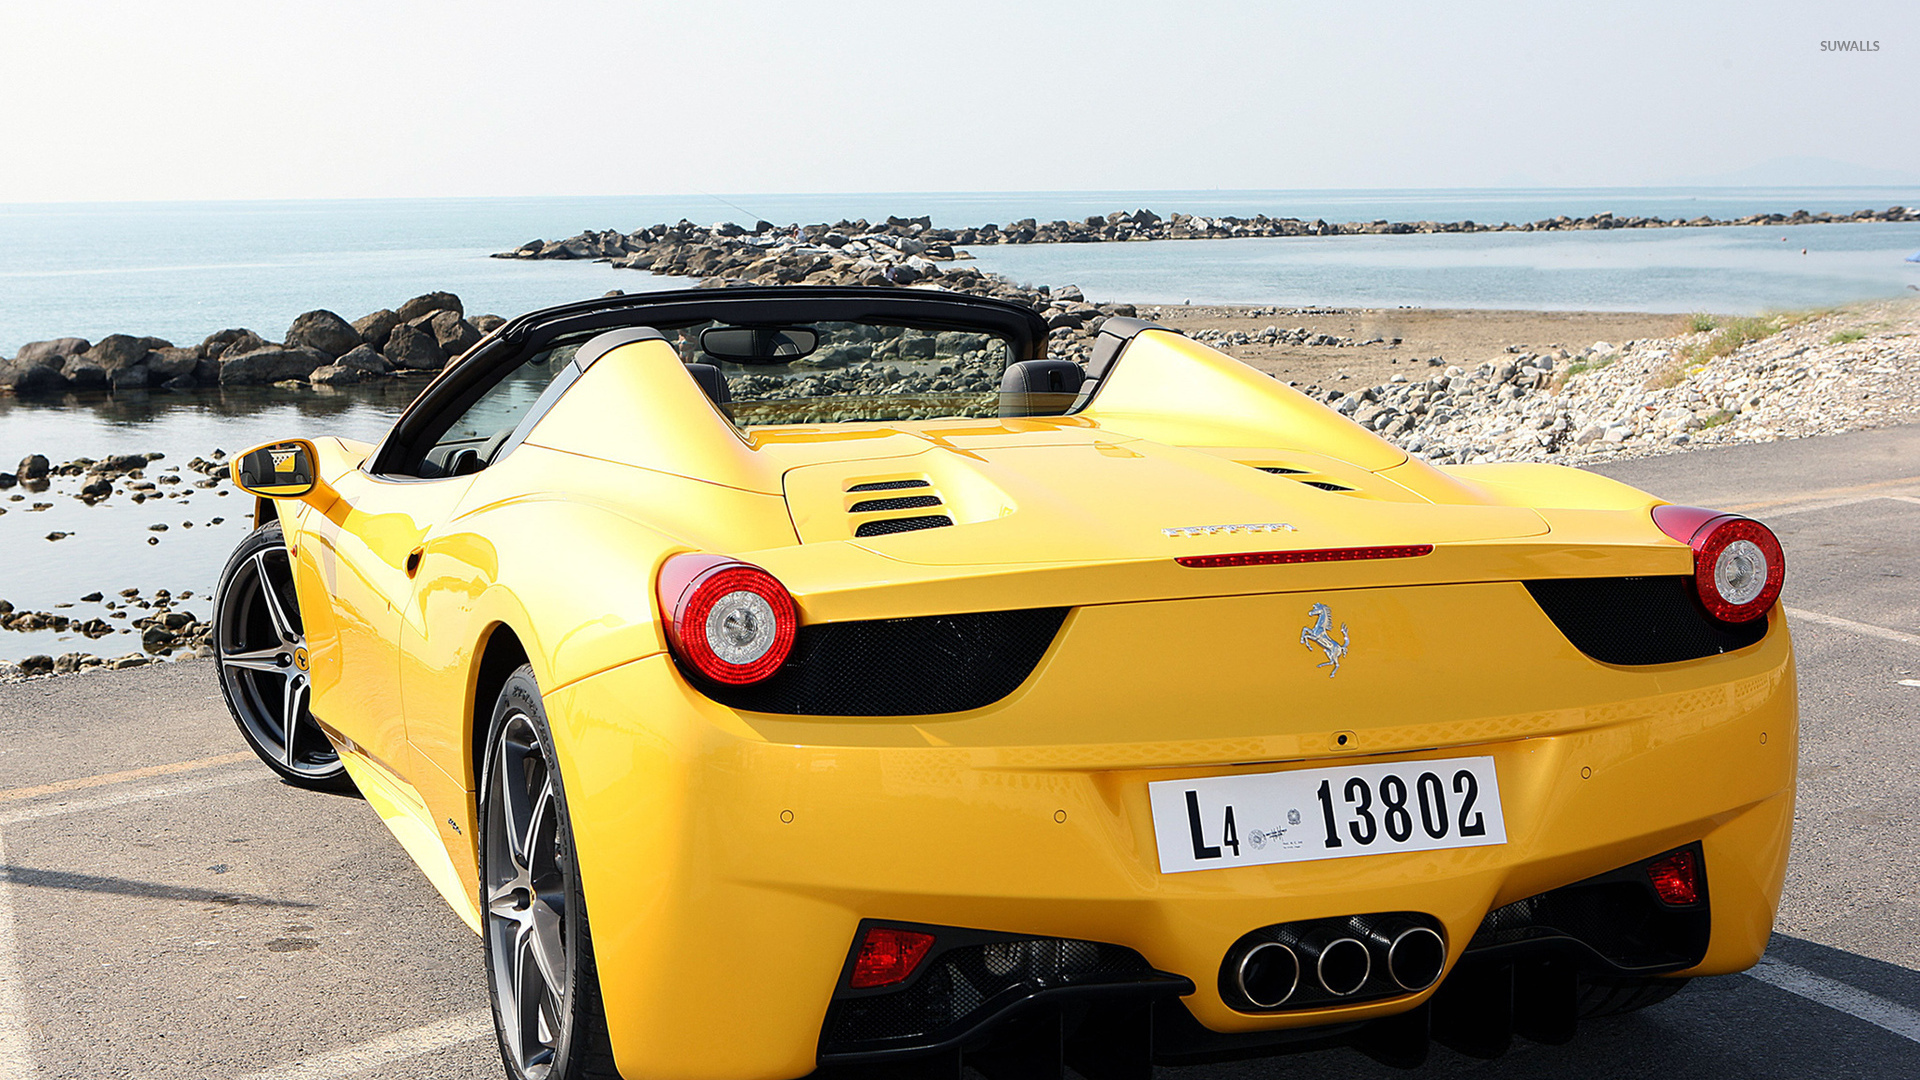 Car Hdr Wallpaper Yellow Ferrari 458 Spider Back View Wallpaper Car